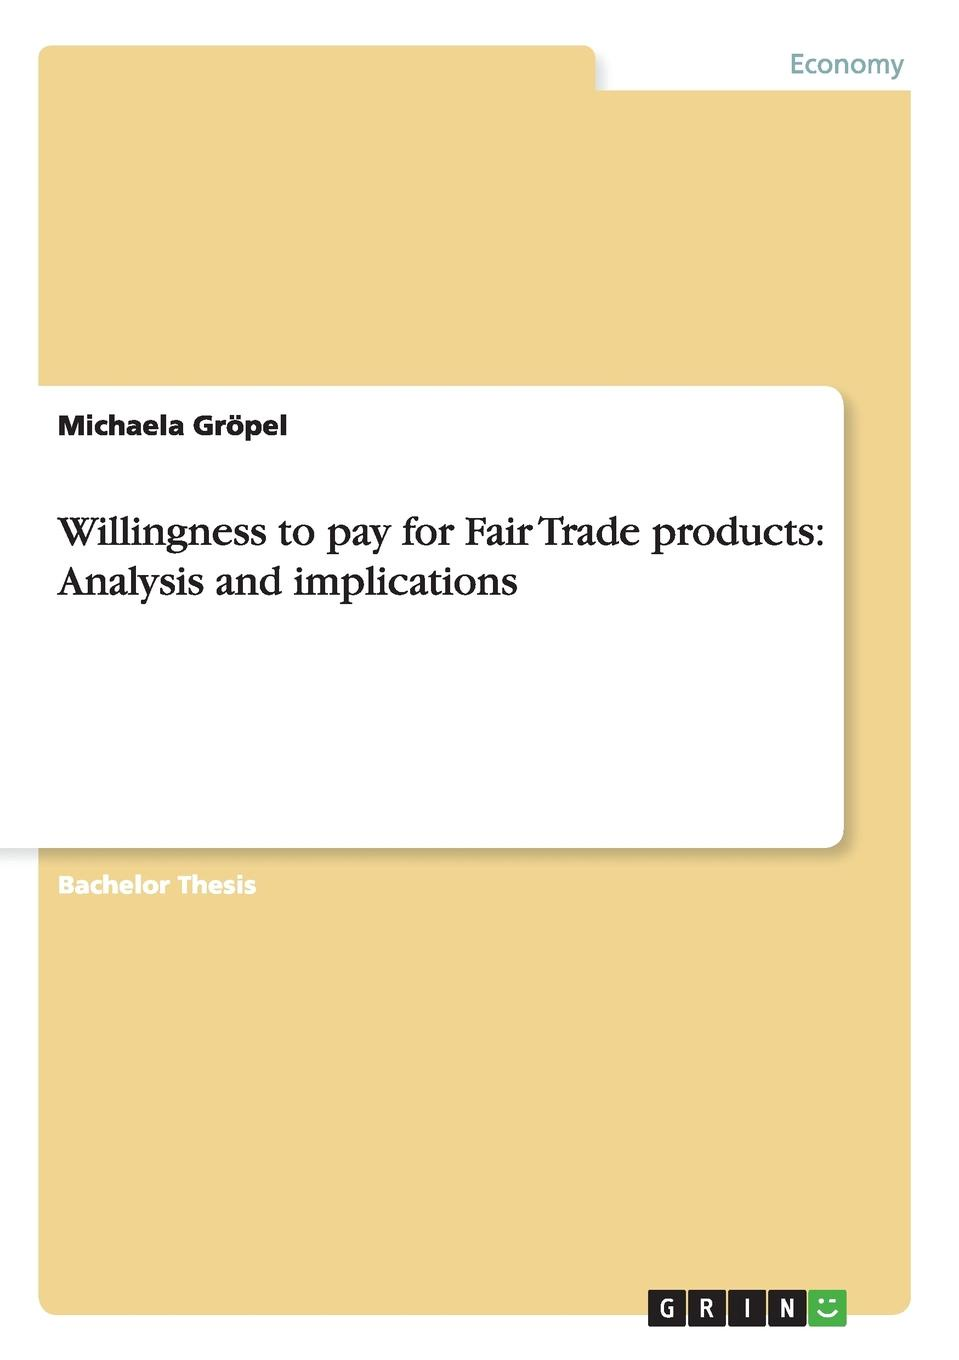 Willingness to pay for Fair Trade products. Analysis and implications Bachelor Thesis from the year 2012 in the subject Business economics...